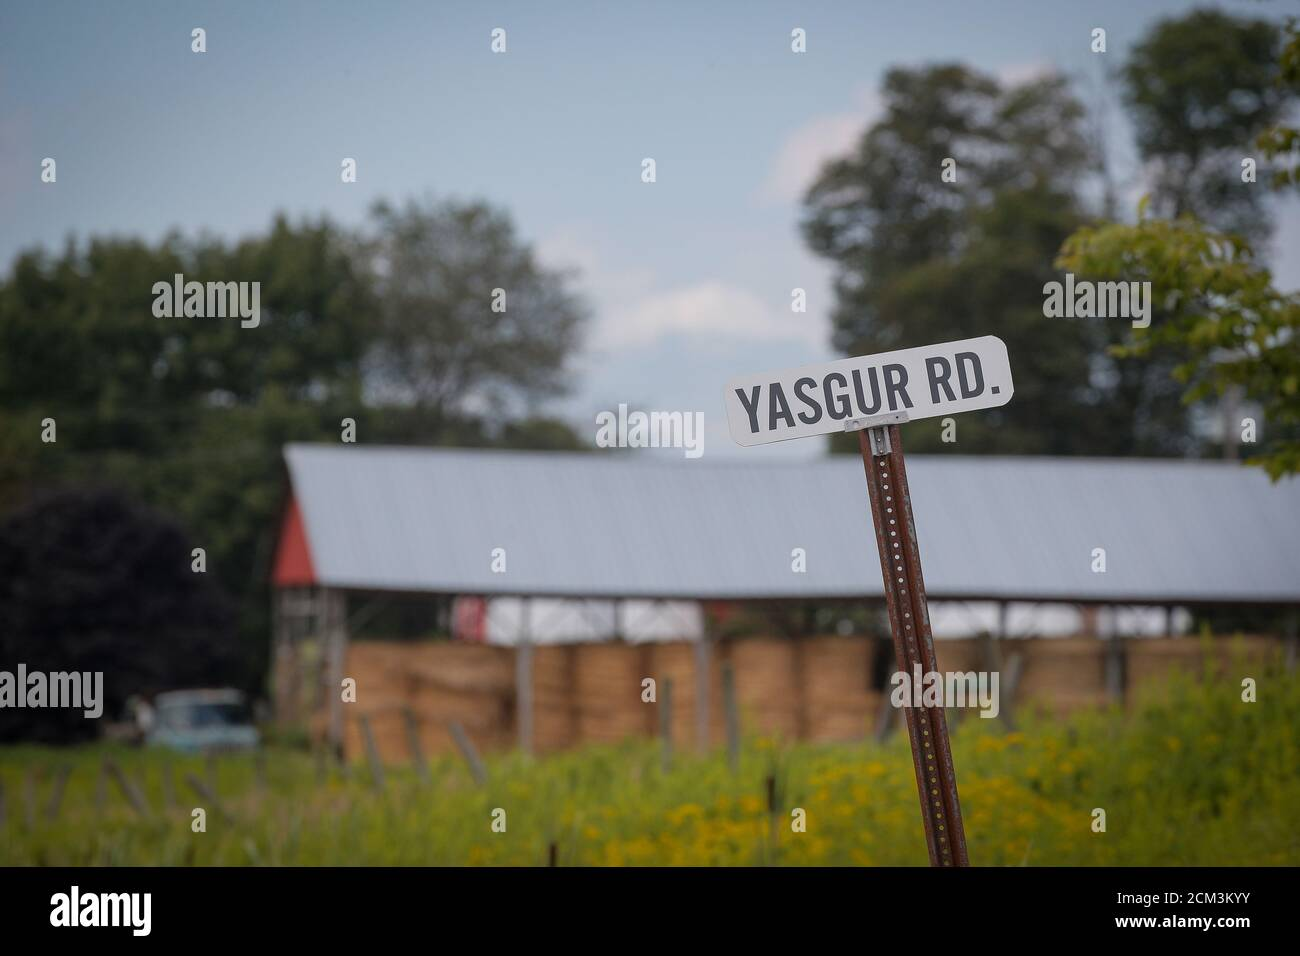 A street sign for Yasgur Rd., on what was Max Yasgur's farm, the original  site of